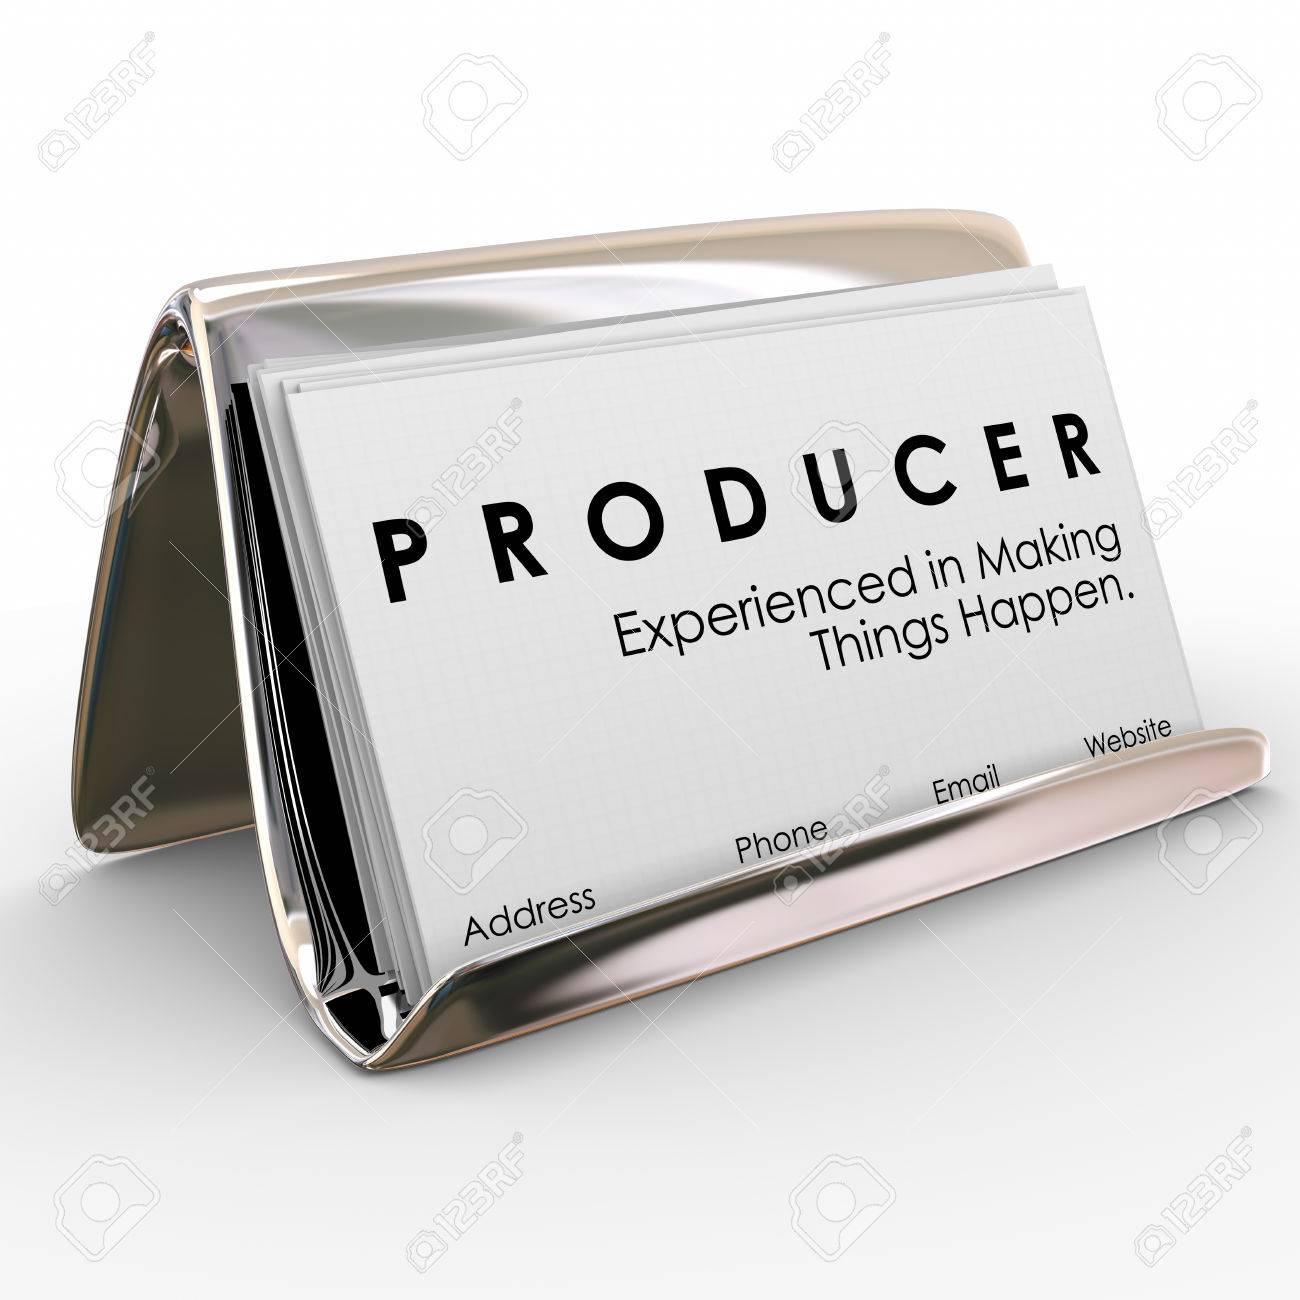 Producer Experienced In Making Things Happen Words On Business